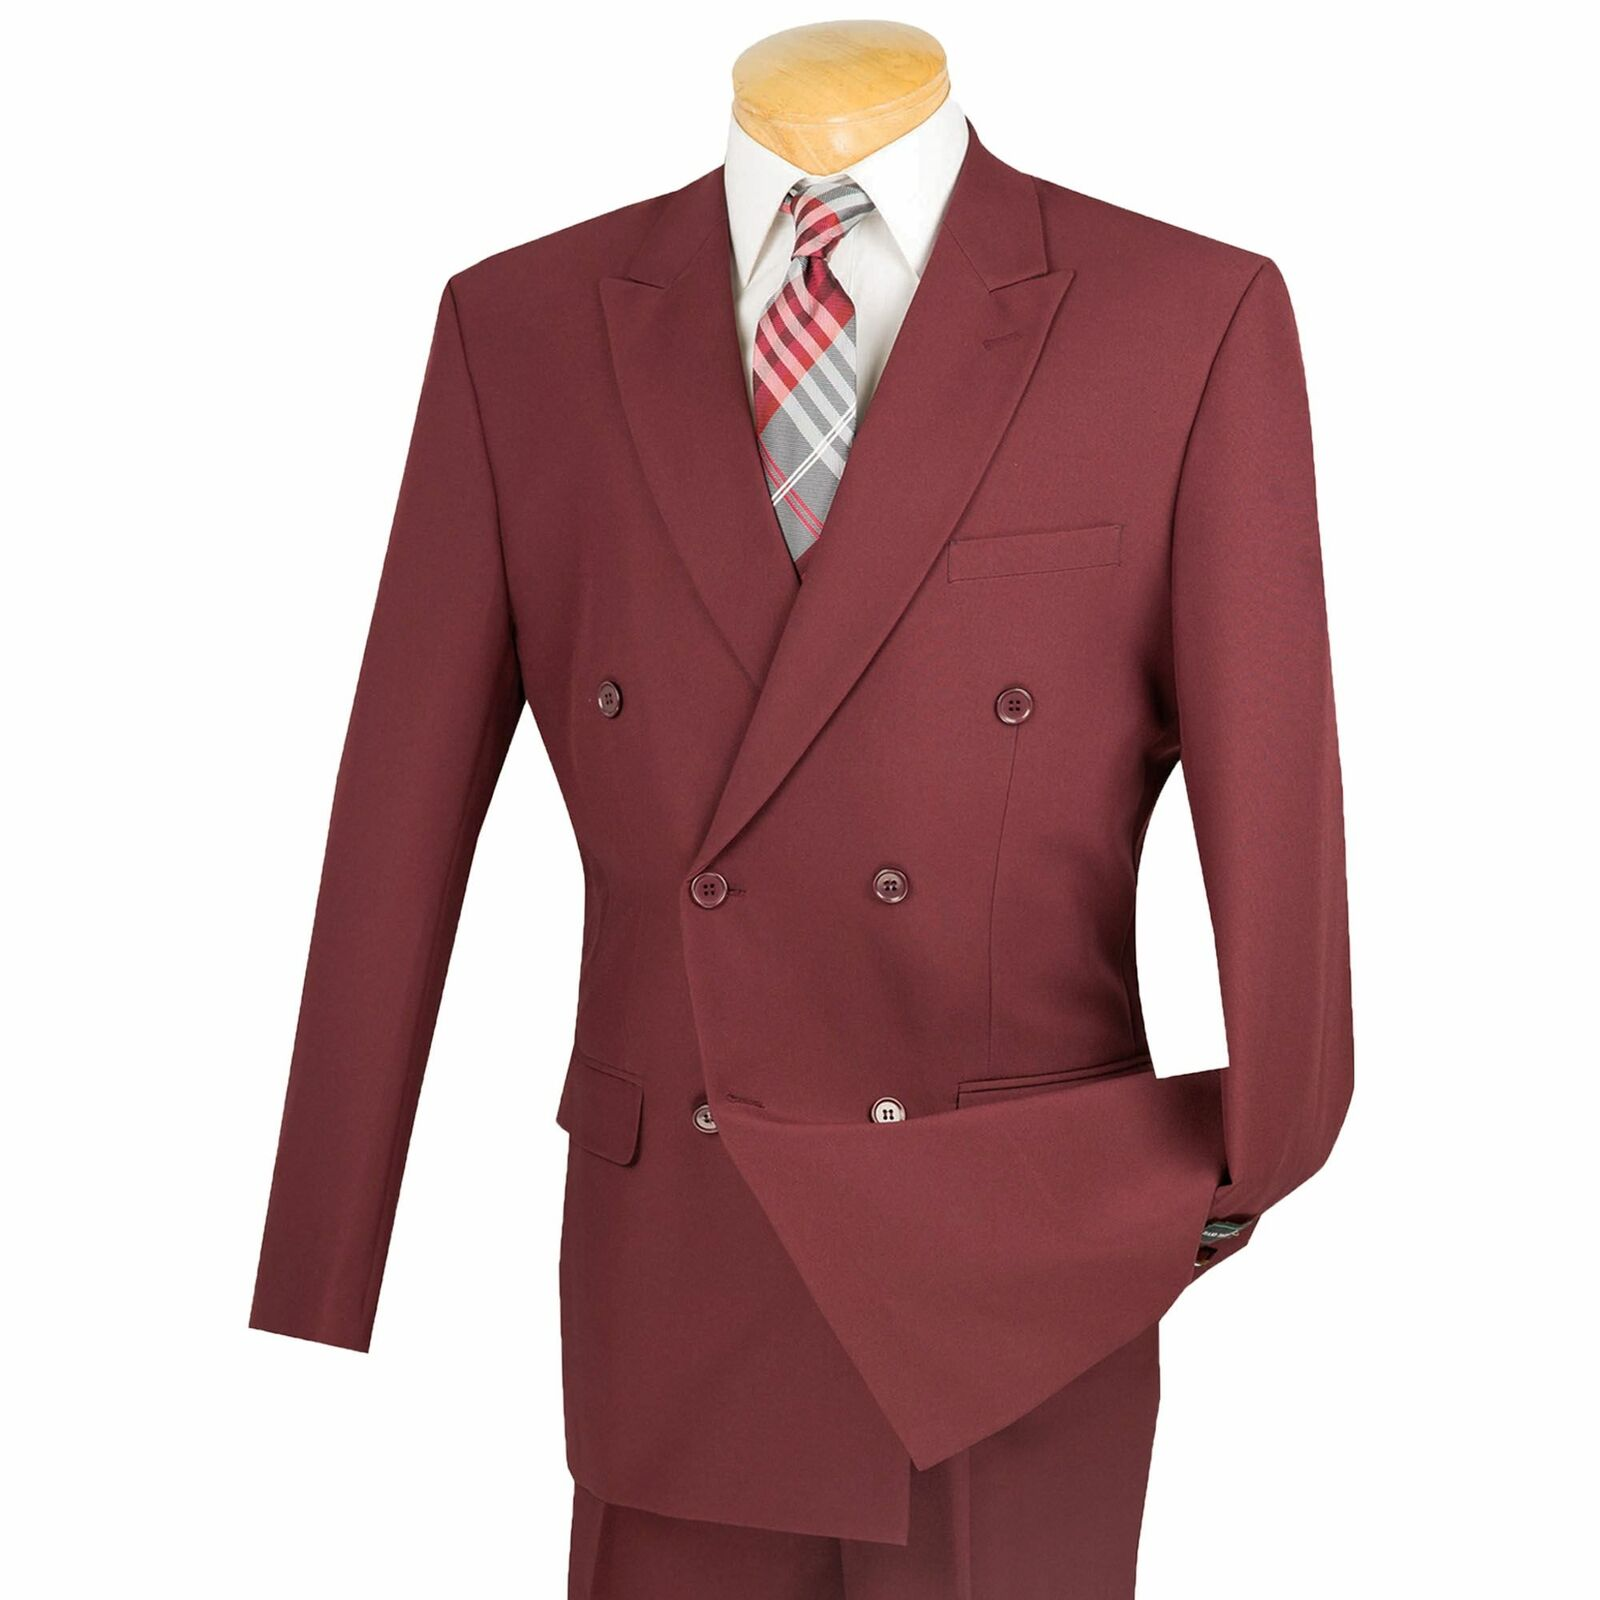 Lucci Men's Burgundy Double Breasted Classic Fit Poplin Polyester Suit